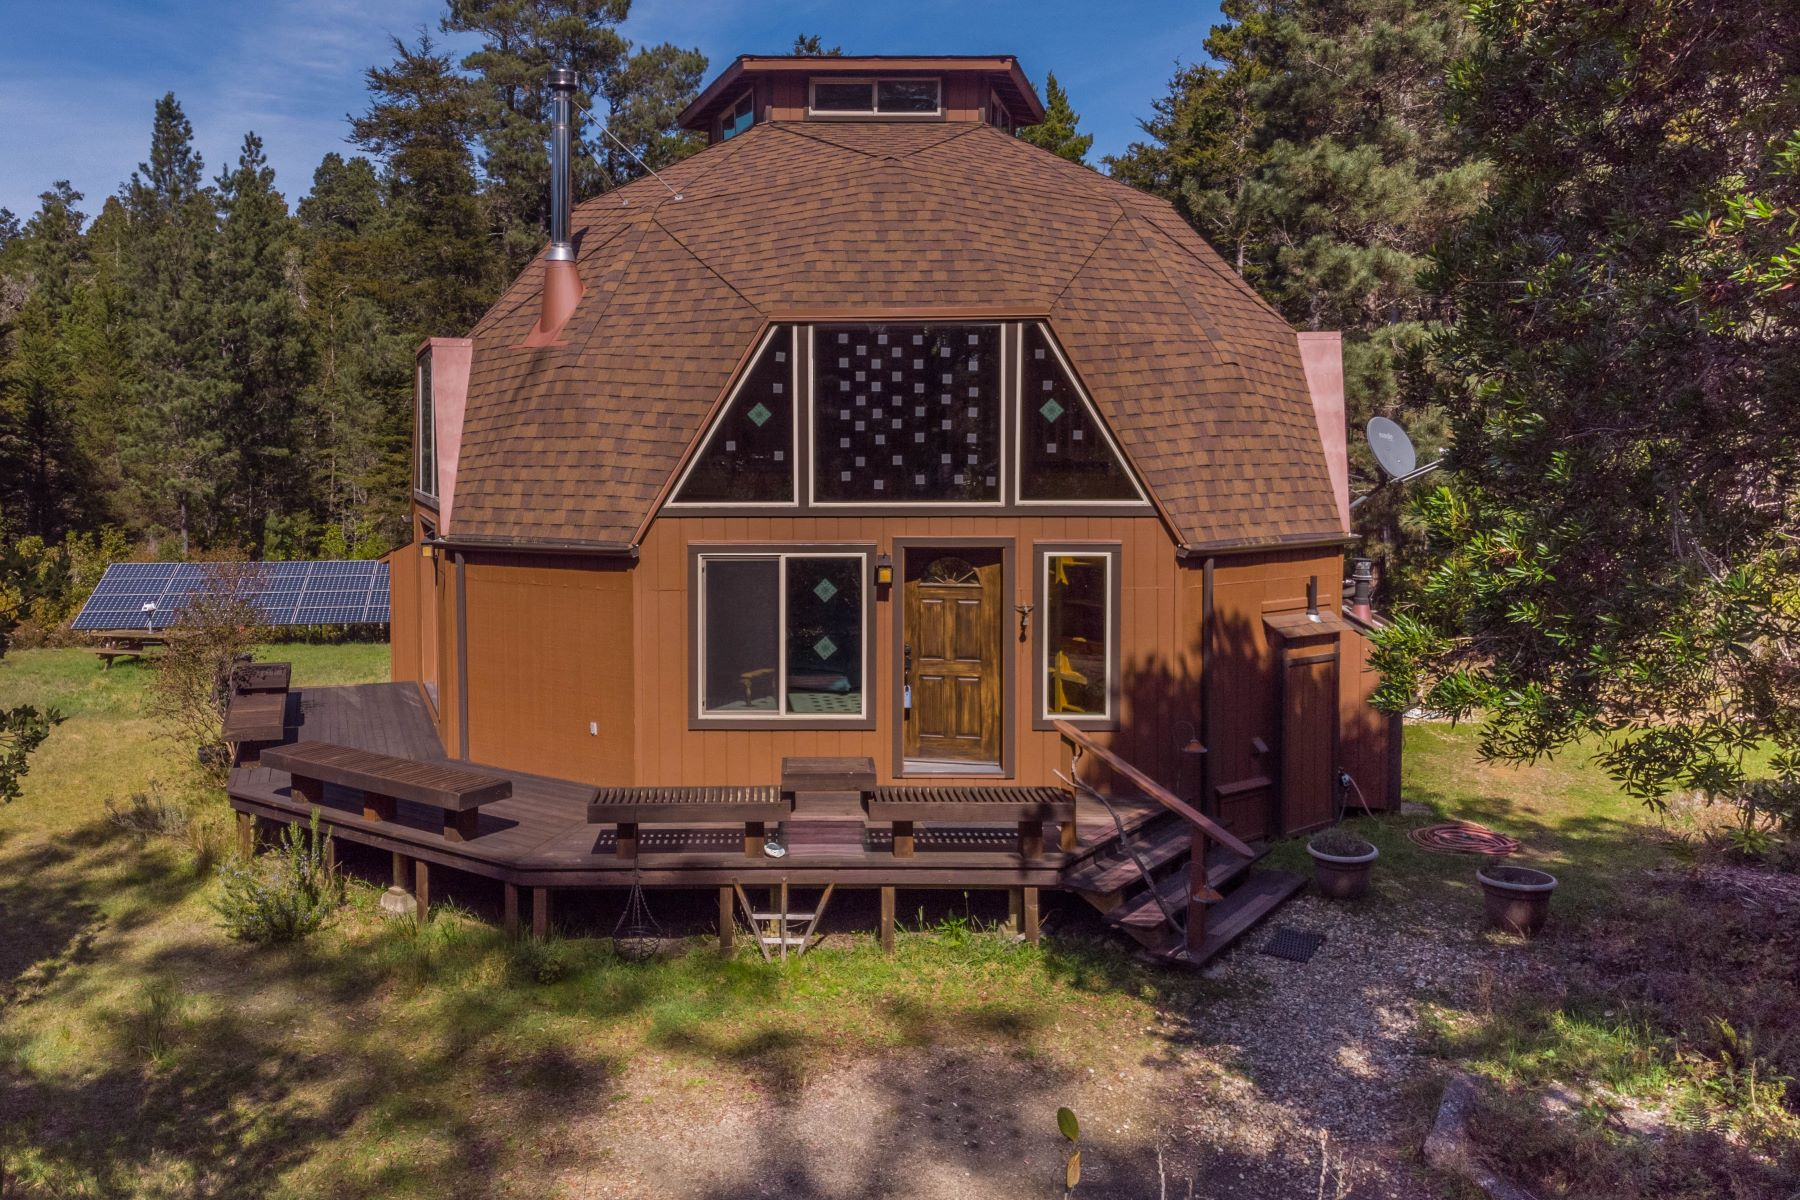 Single Family Homes for Sale at Back to Eden 31700 N. Mitchell Creek Road Fort Bragg, California 95437 United States